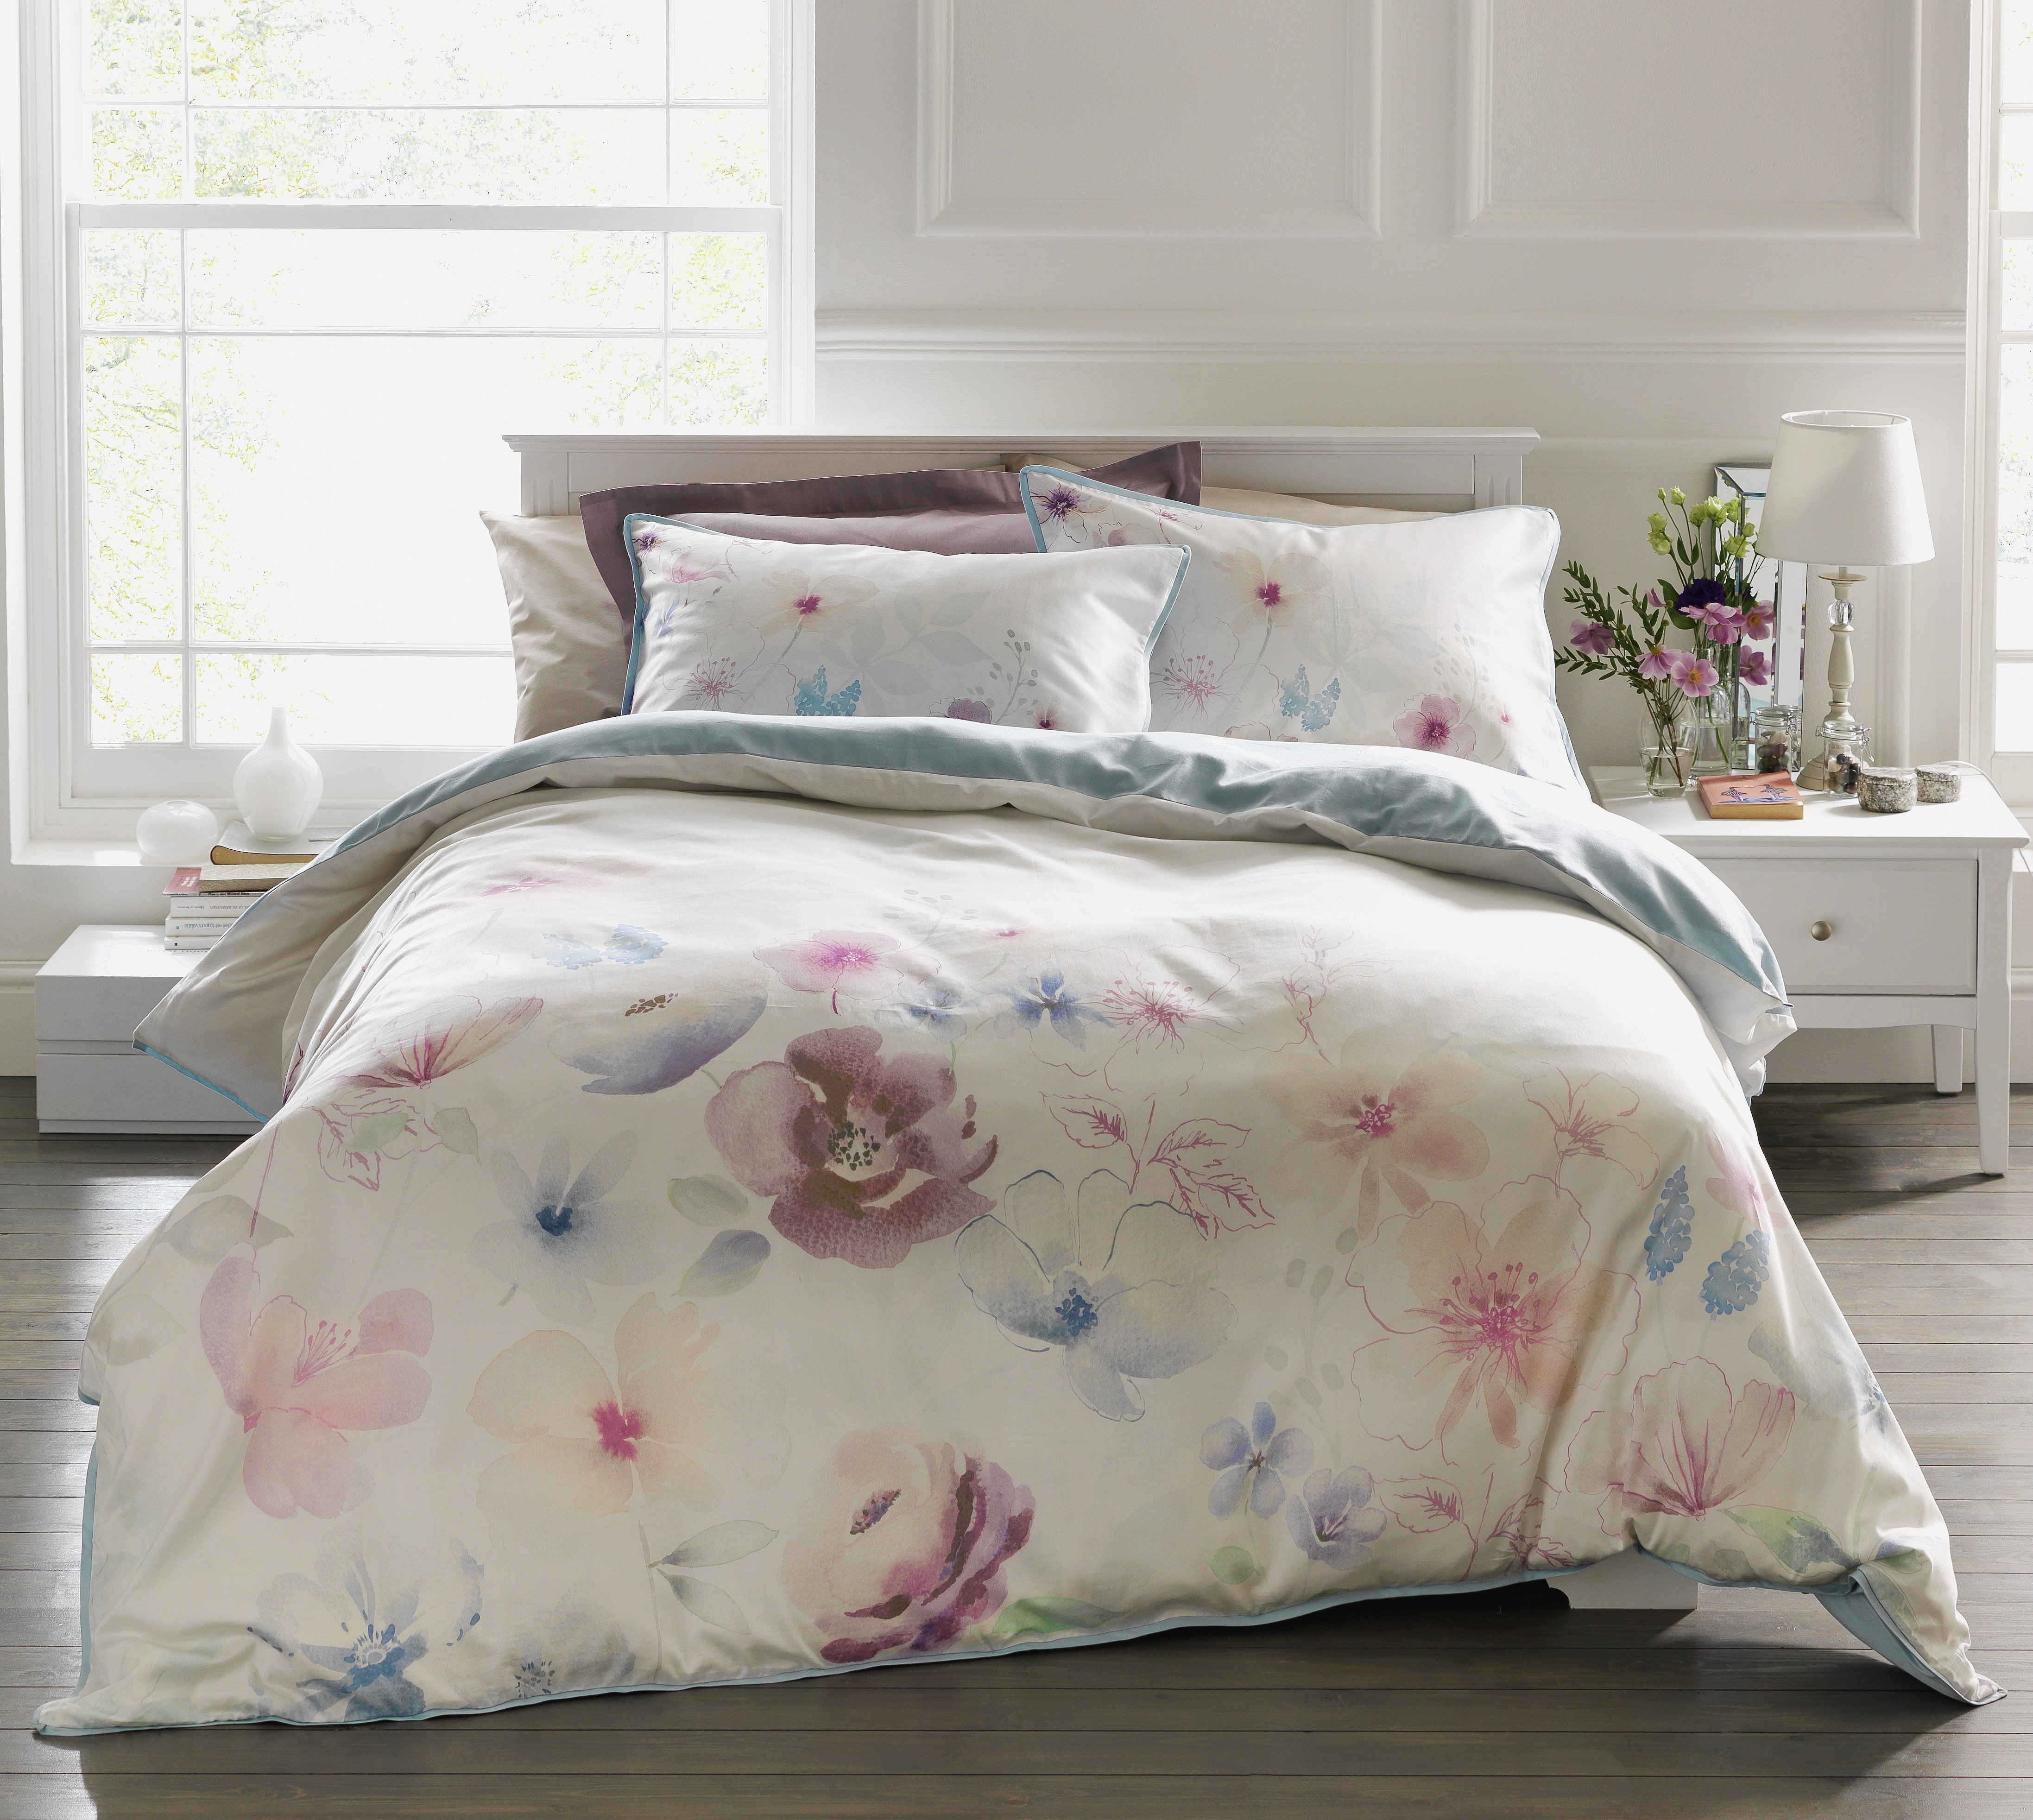 heart of house emily bedding set  double